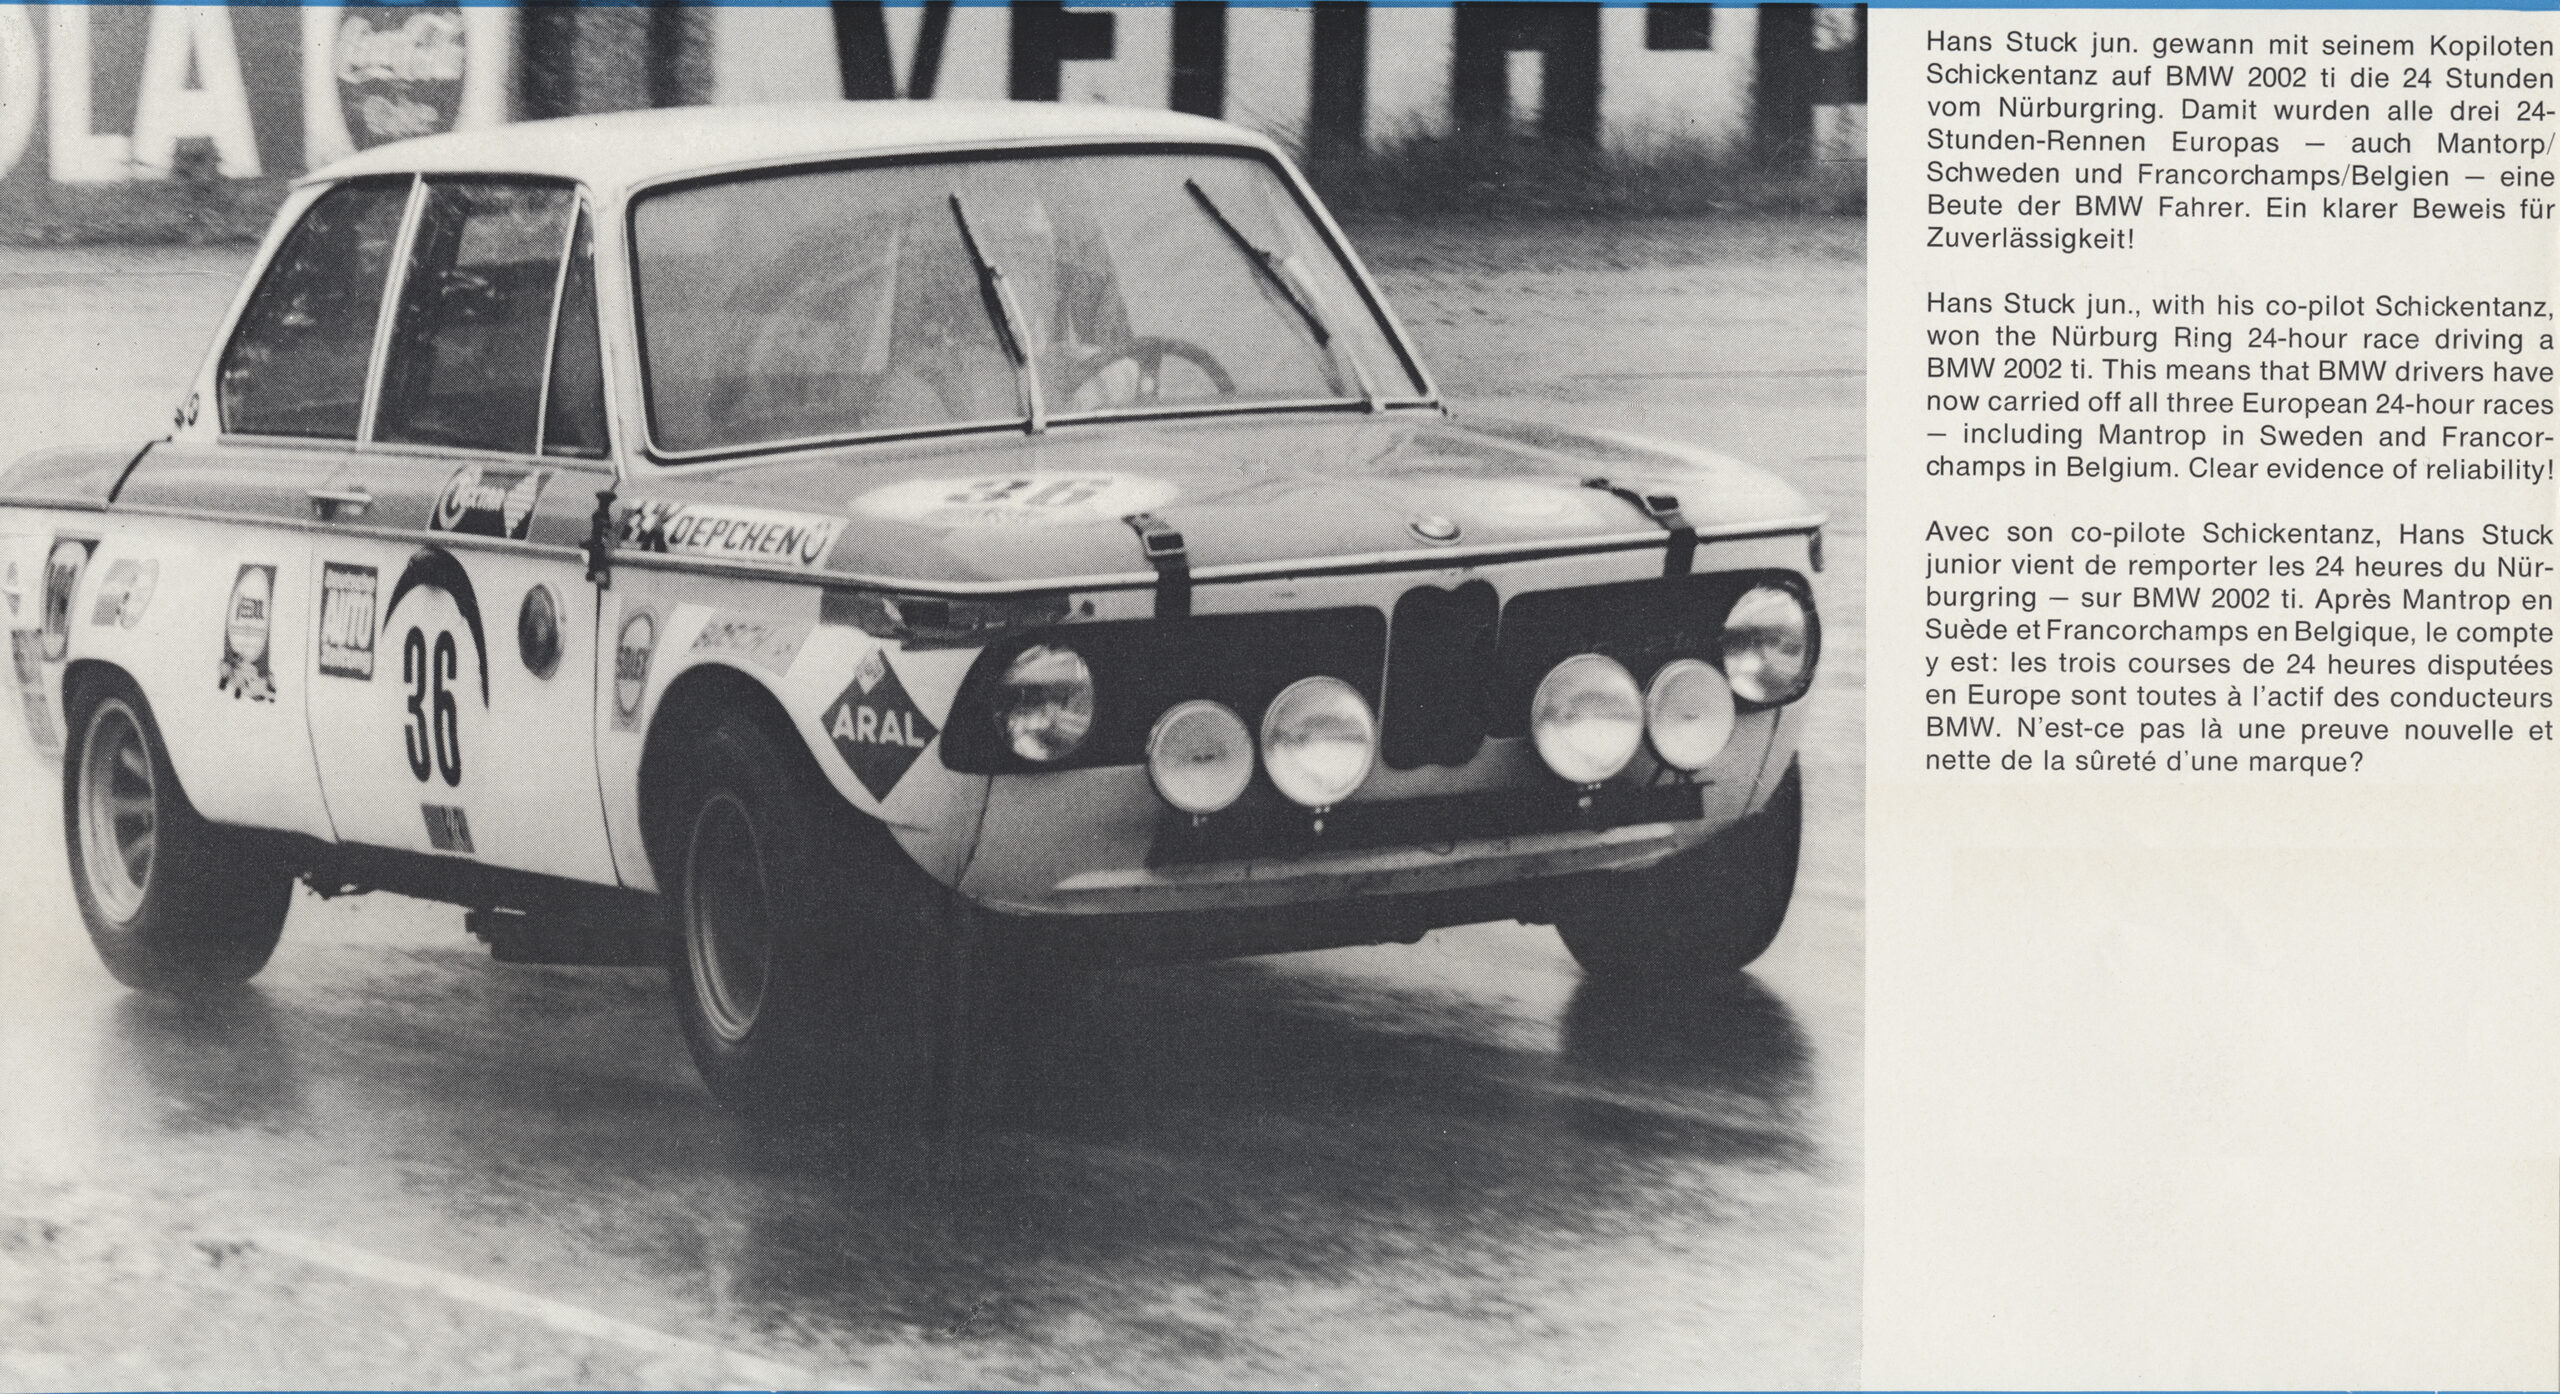 Looking Back At Bmw S 50 Year History In The Nurburgring 24 Hour Race